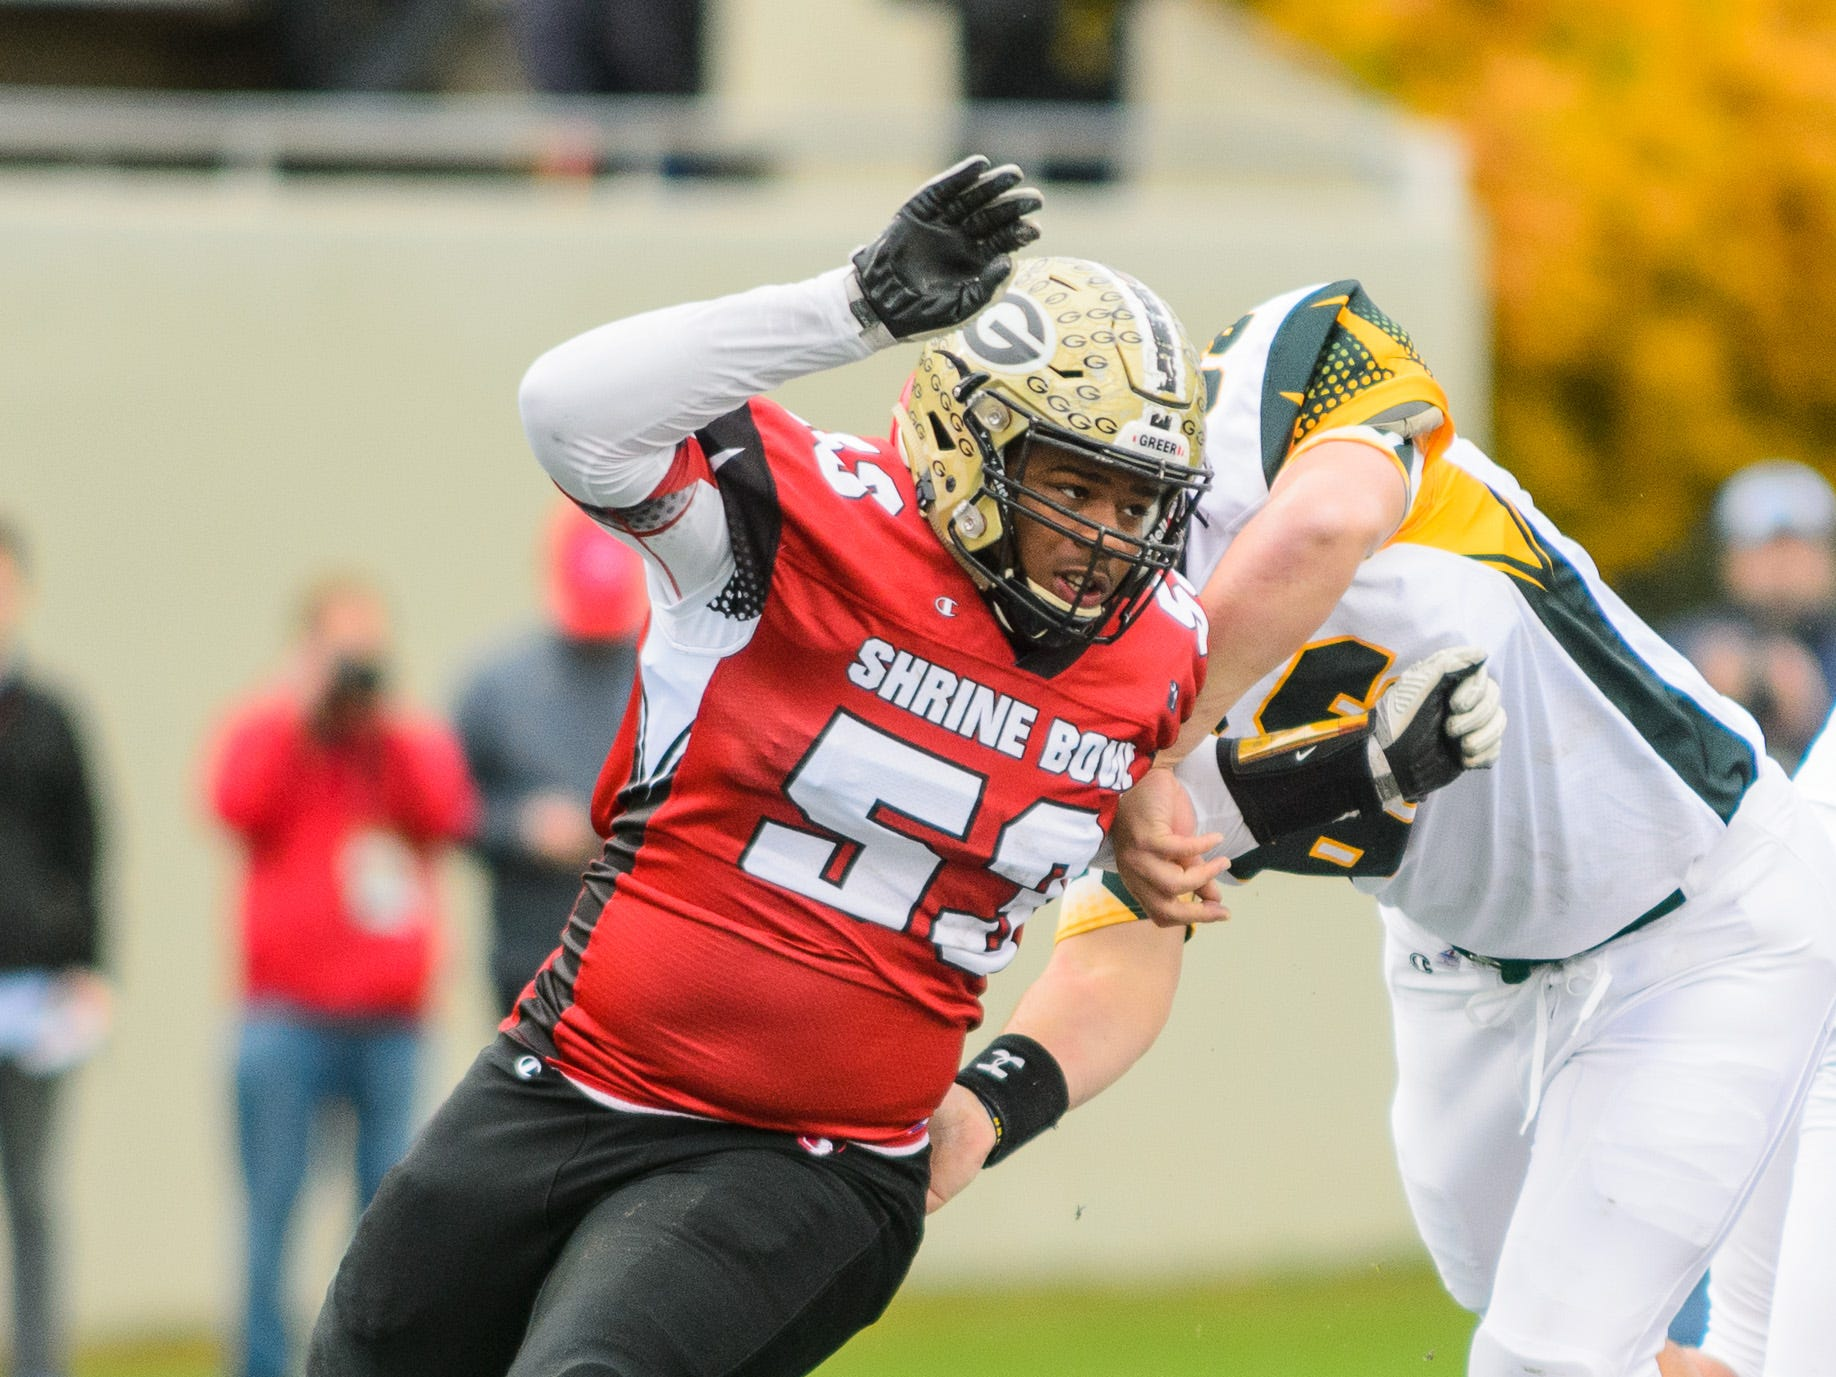 Greer defensive lineman Quack Cohen (53) rushes the quarterback during the 82nd annual Shrine Bowl of the Carolinas on Saturday, December 15, 2018 at Wofford's Gibbs Stadium in Spartanburg, SC.